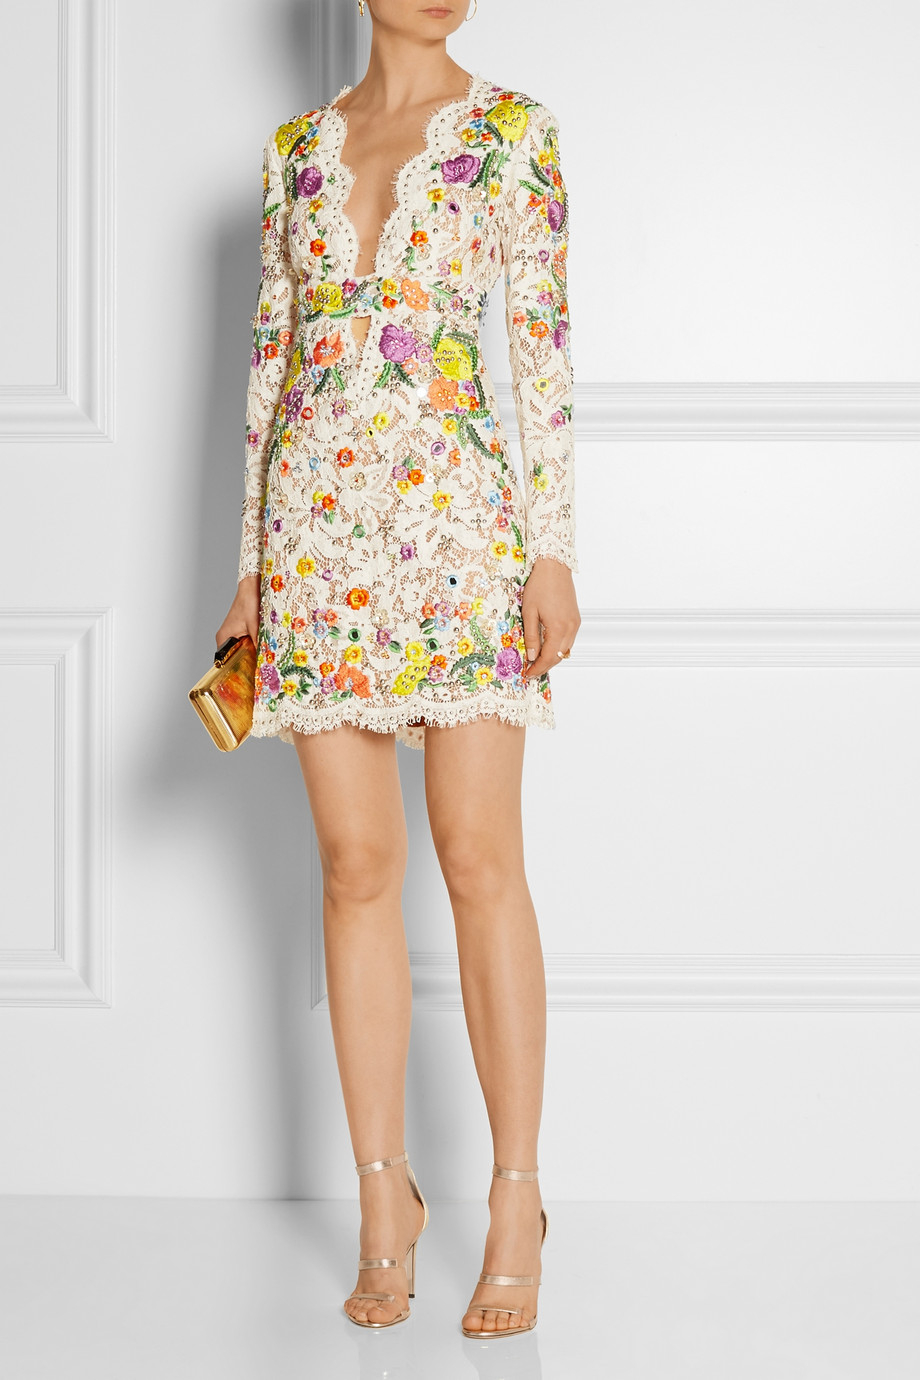 Emilio pucci floral embroidery embellished lace dress in